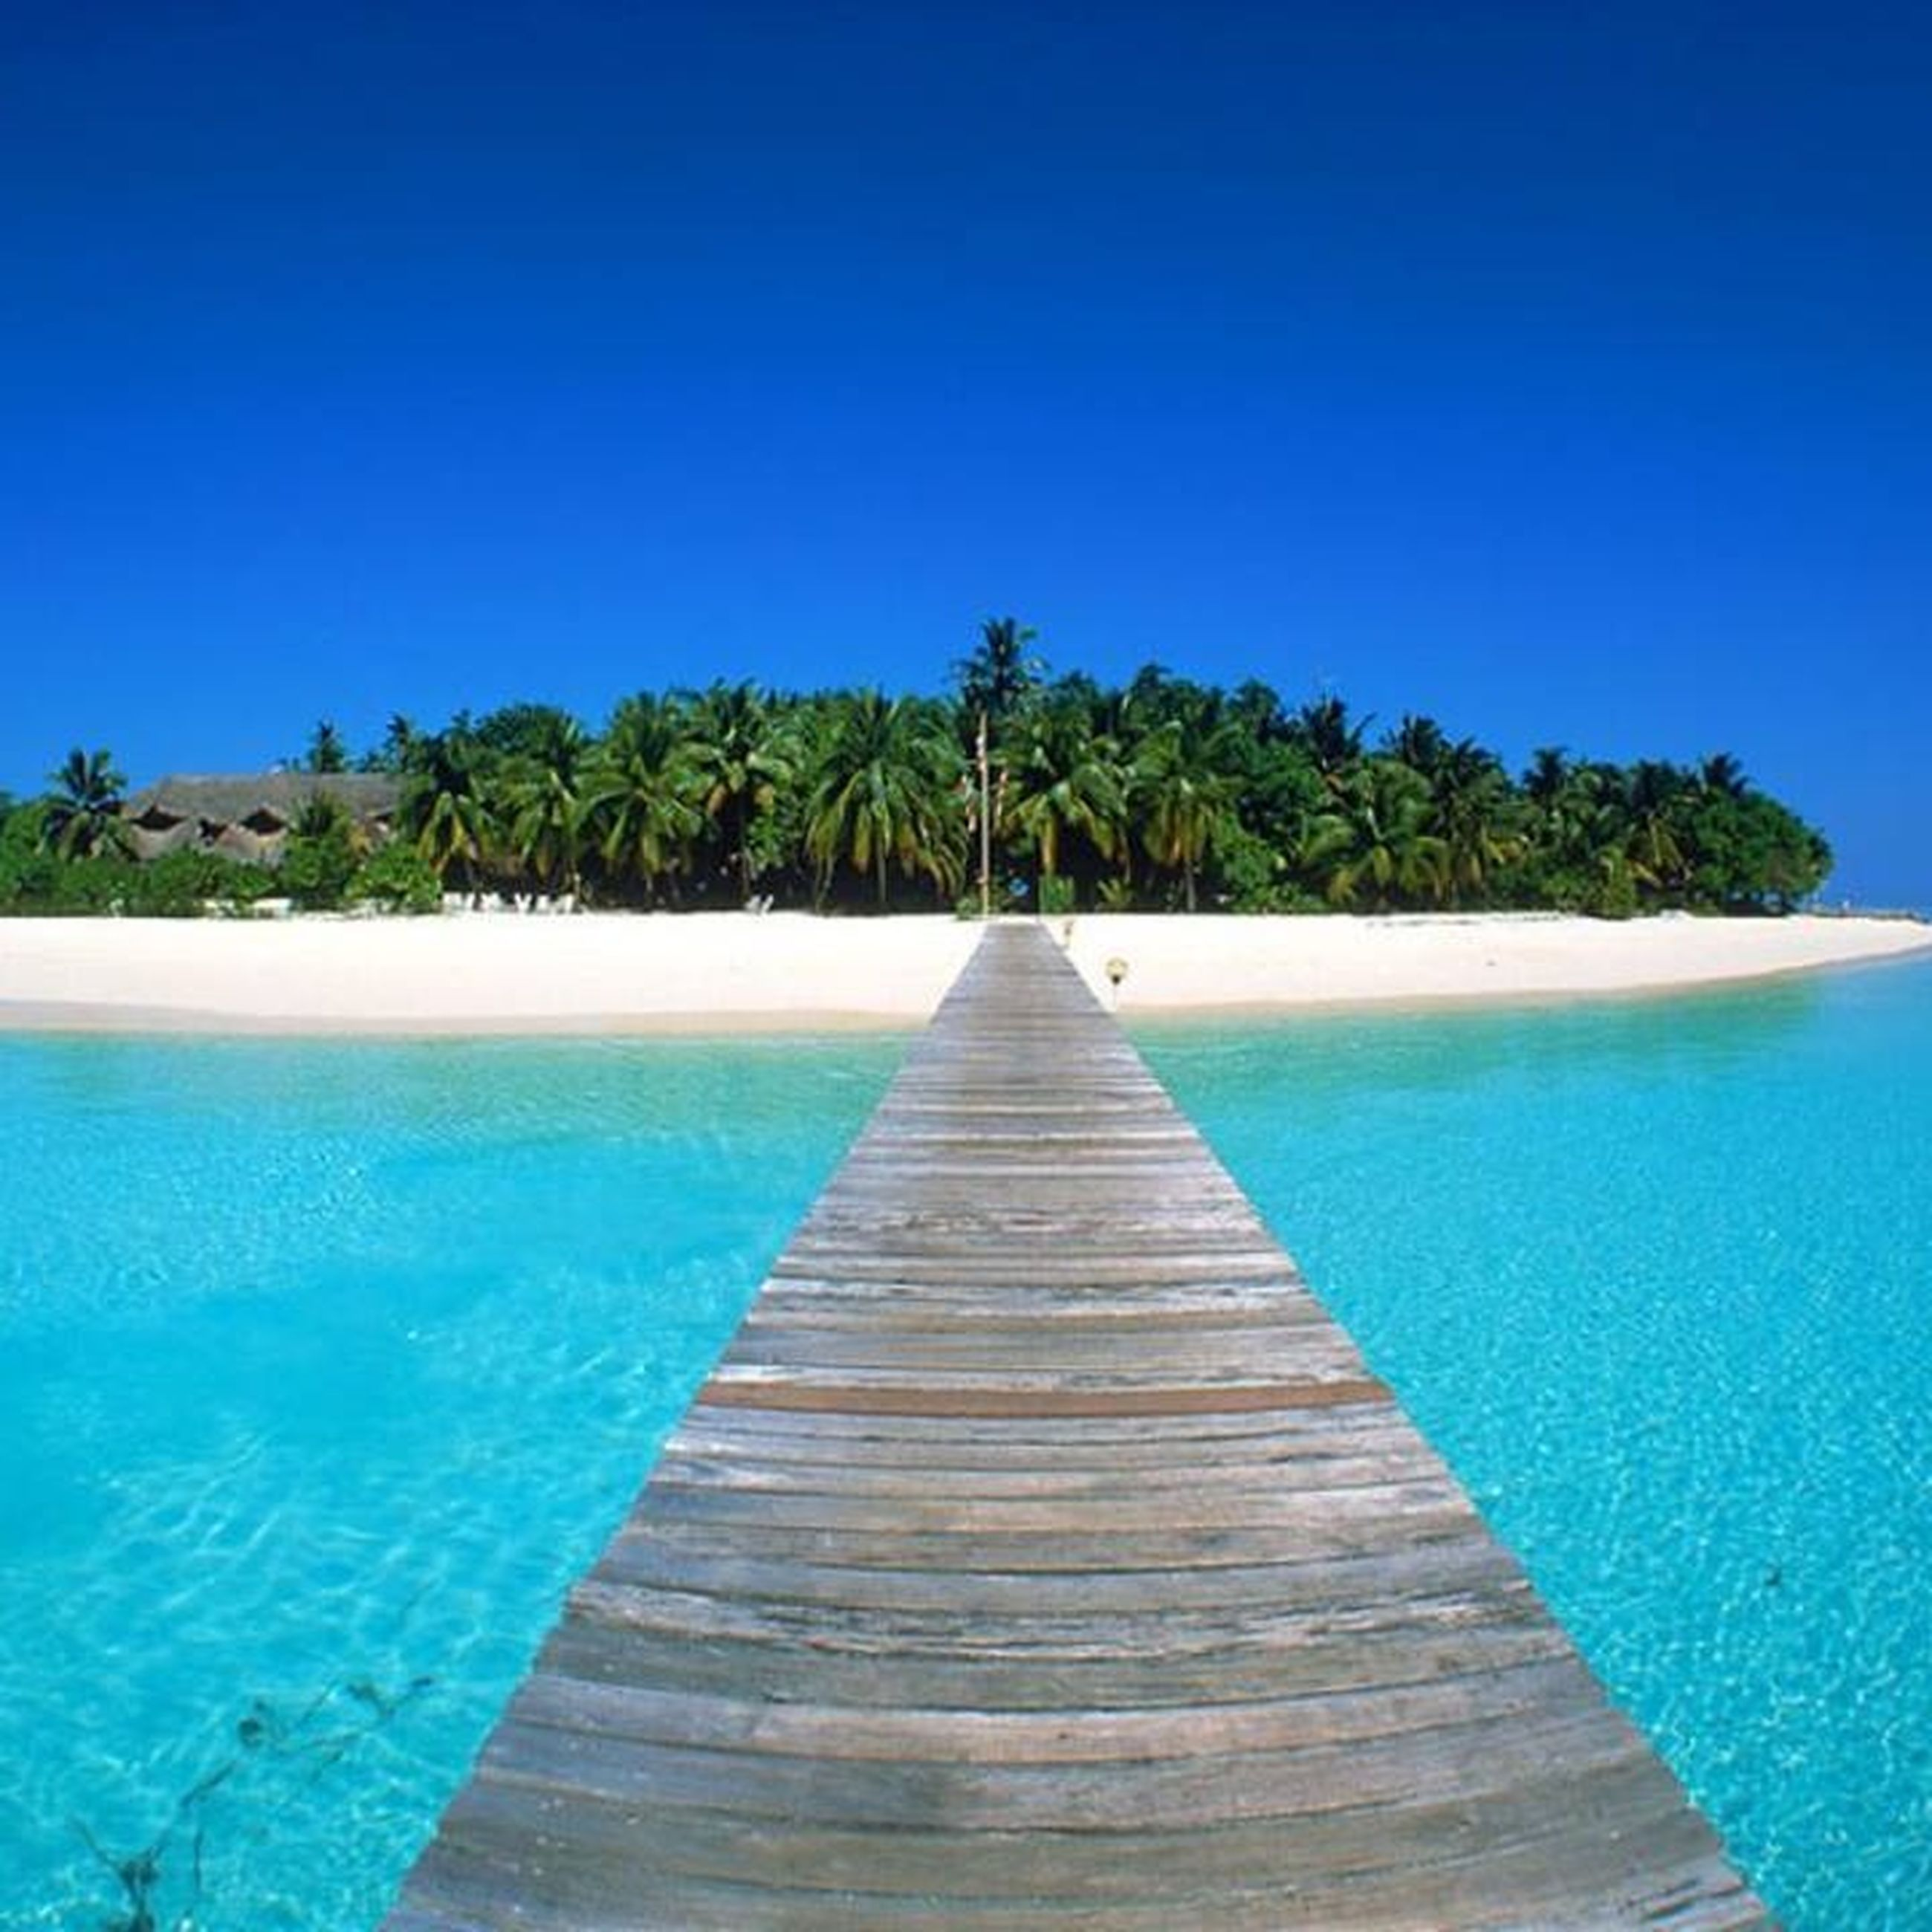 blue, water, sea, clear sky, tranquility, tranquil scene, the way forward, tree, beach, scenics, beauty in nature, horizon over water, copy space, nature, palm tree, diminishing perspective, idyllic, swimming pool, boardwalk, outdoors